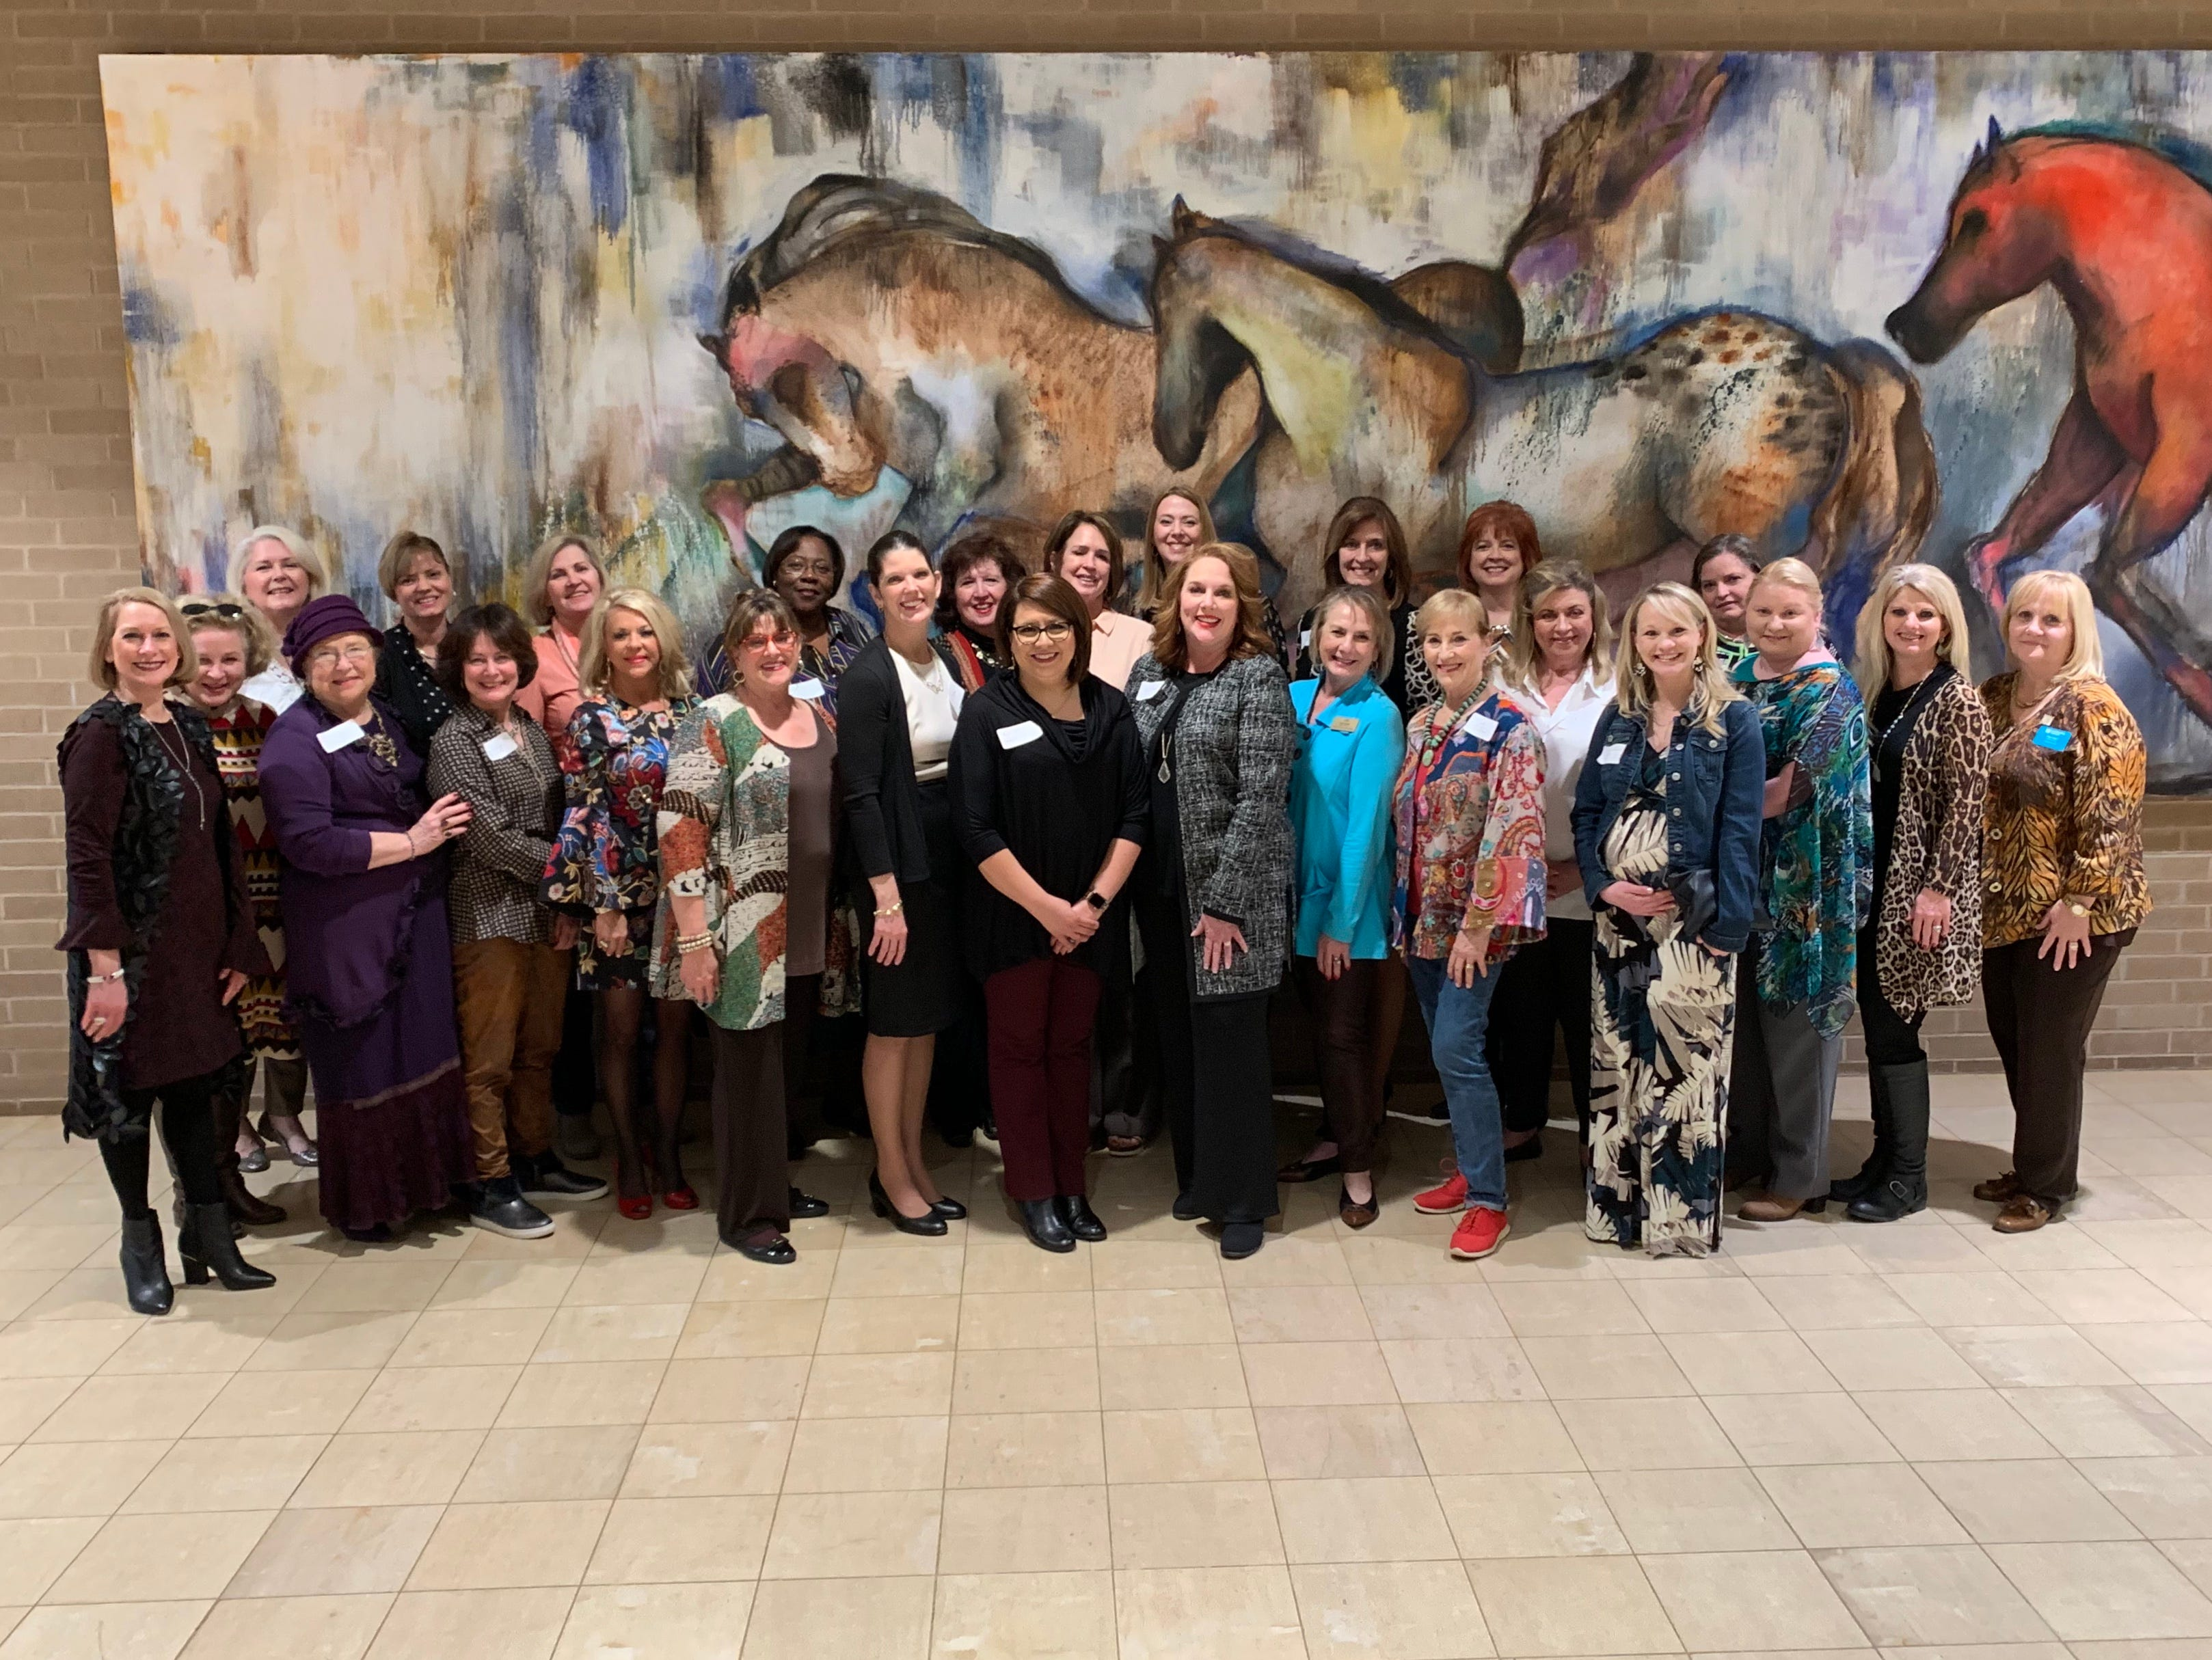 The professionals in the 2019 Leadership Texas for Women class were celebrated at a reception conducted by Abilene's Leadership Texas graduates. At front row center are new program members Julie St. John, DrPH; Kristina Campos Davis, Ph.D.; and Julie Smith. New members not pictured: Megan Dobbs and Leslie Chalmers.